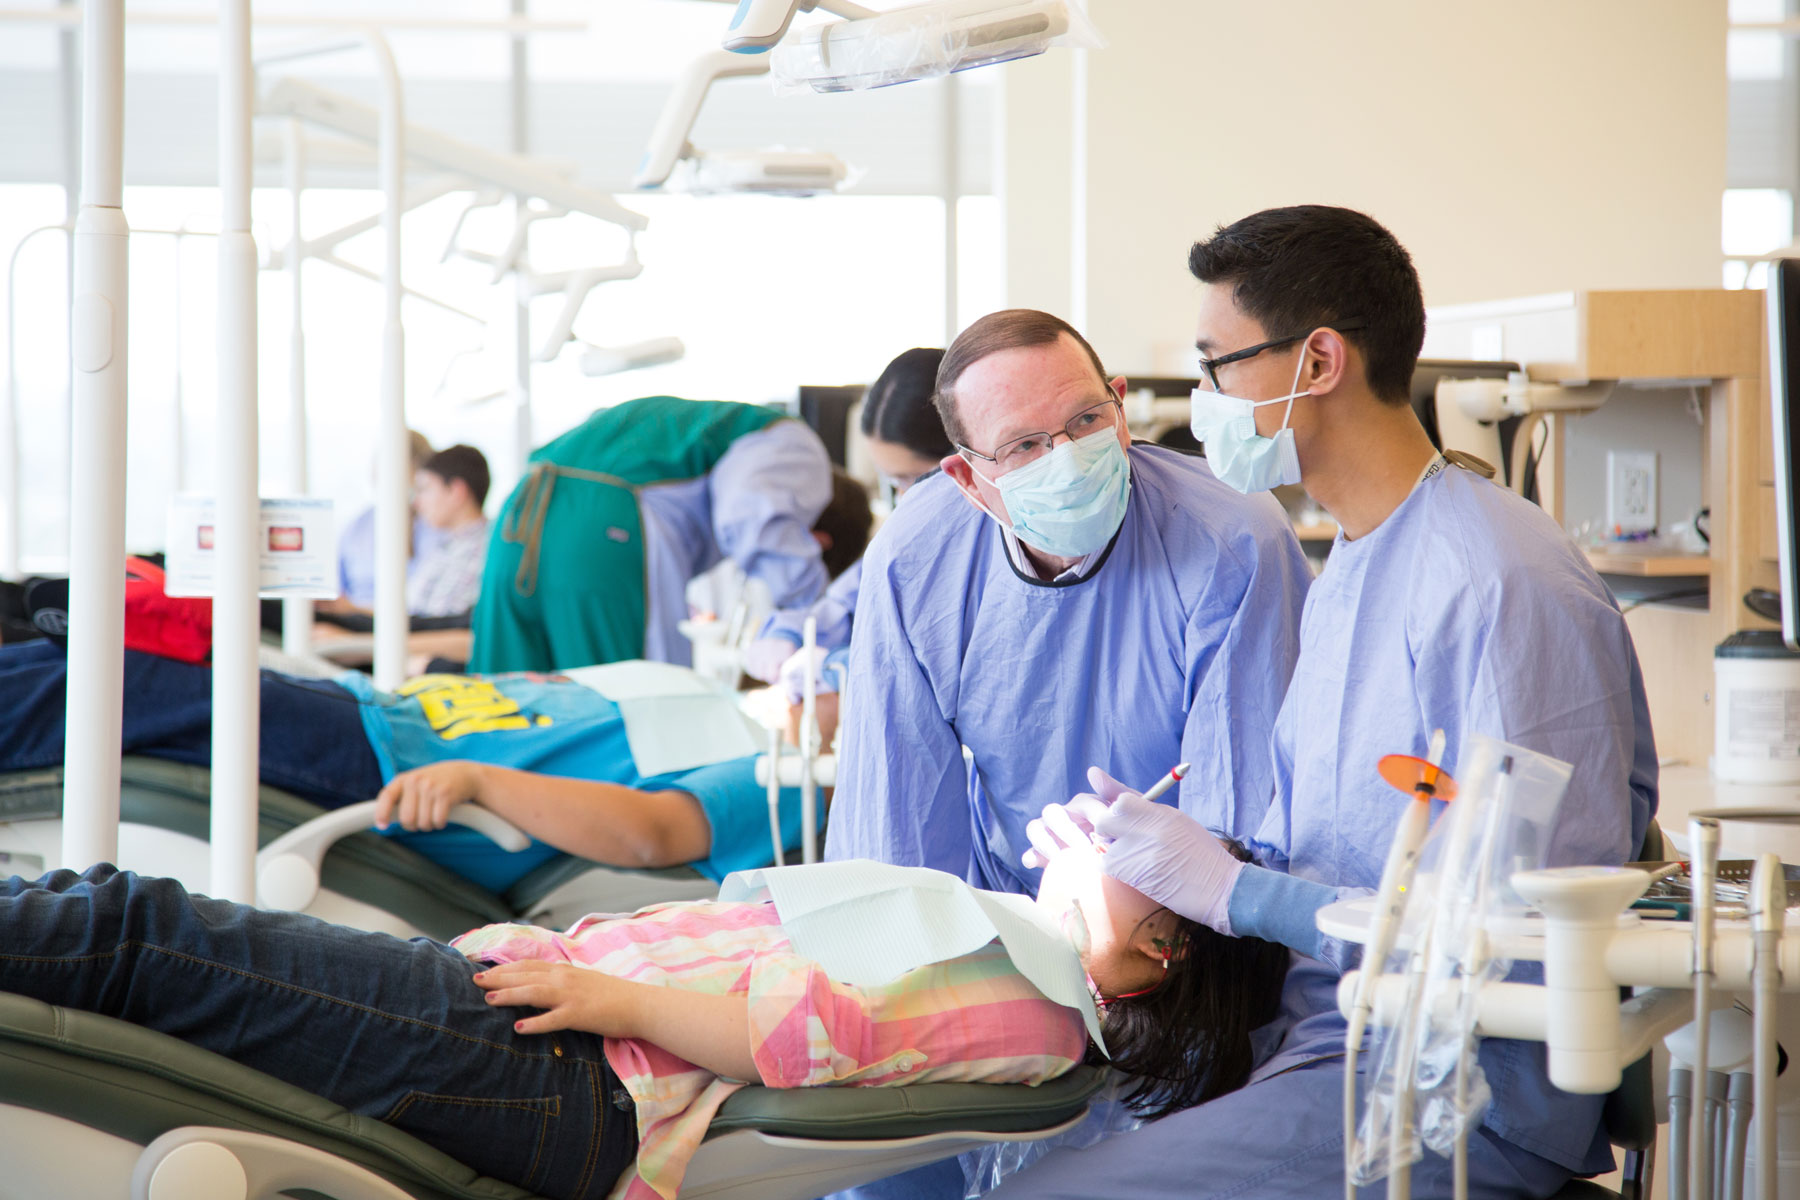 School of Dentistry student consults with faculty member while treating a young patient